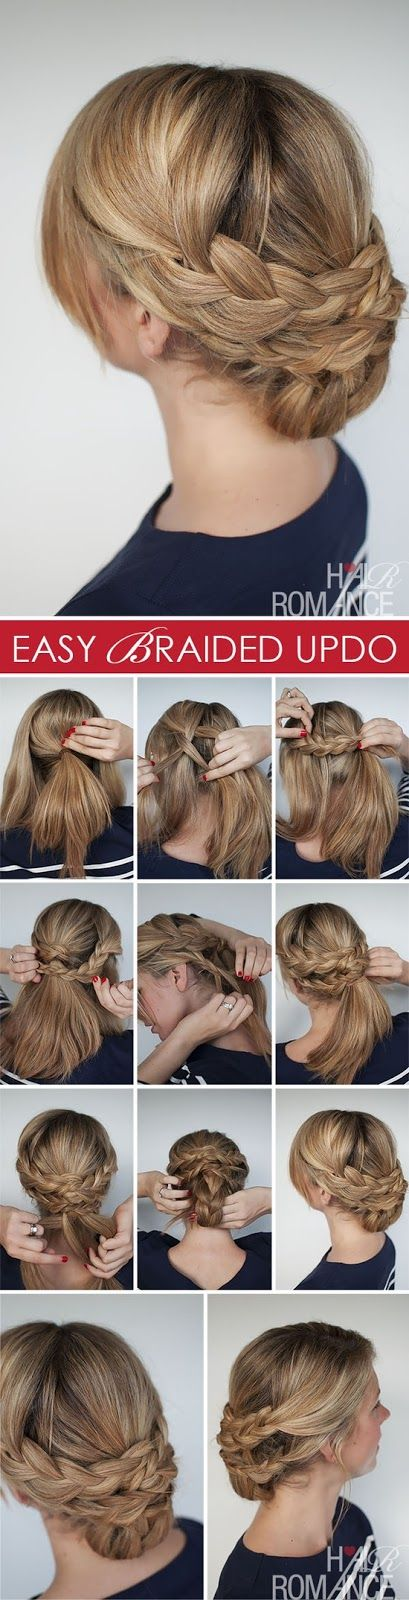 Pinterest Hairstyles: Еasy braided upstyle tutorial